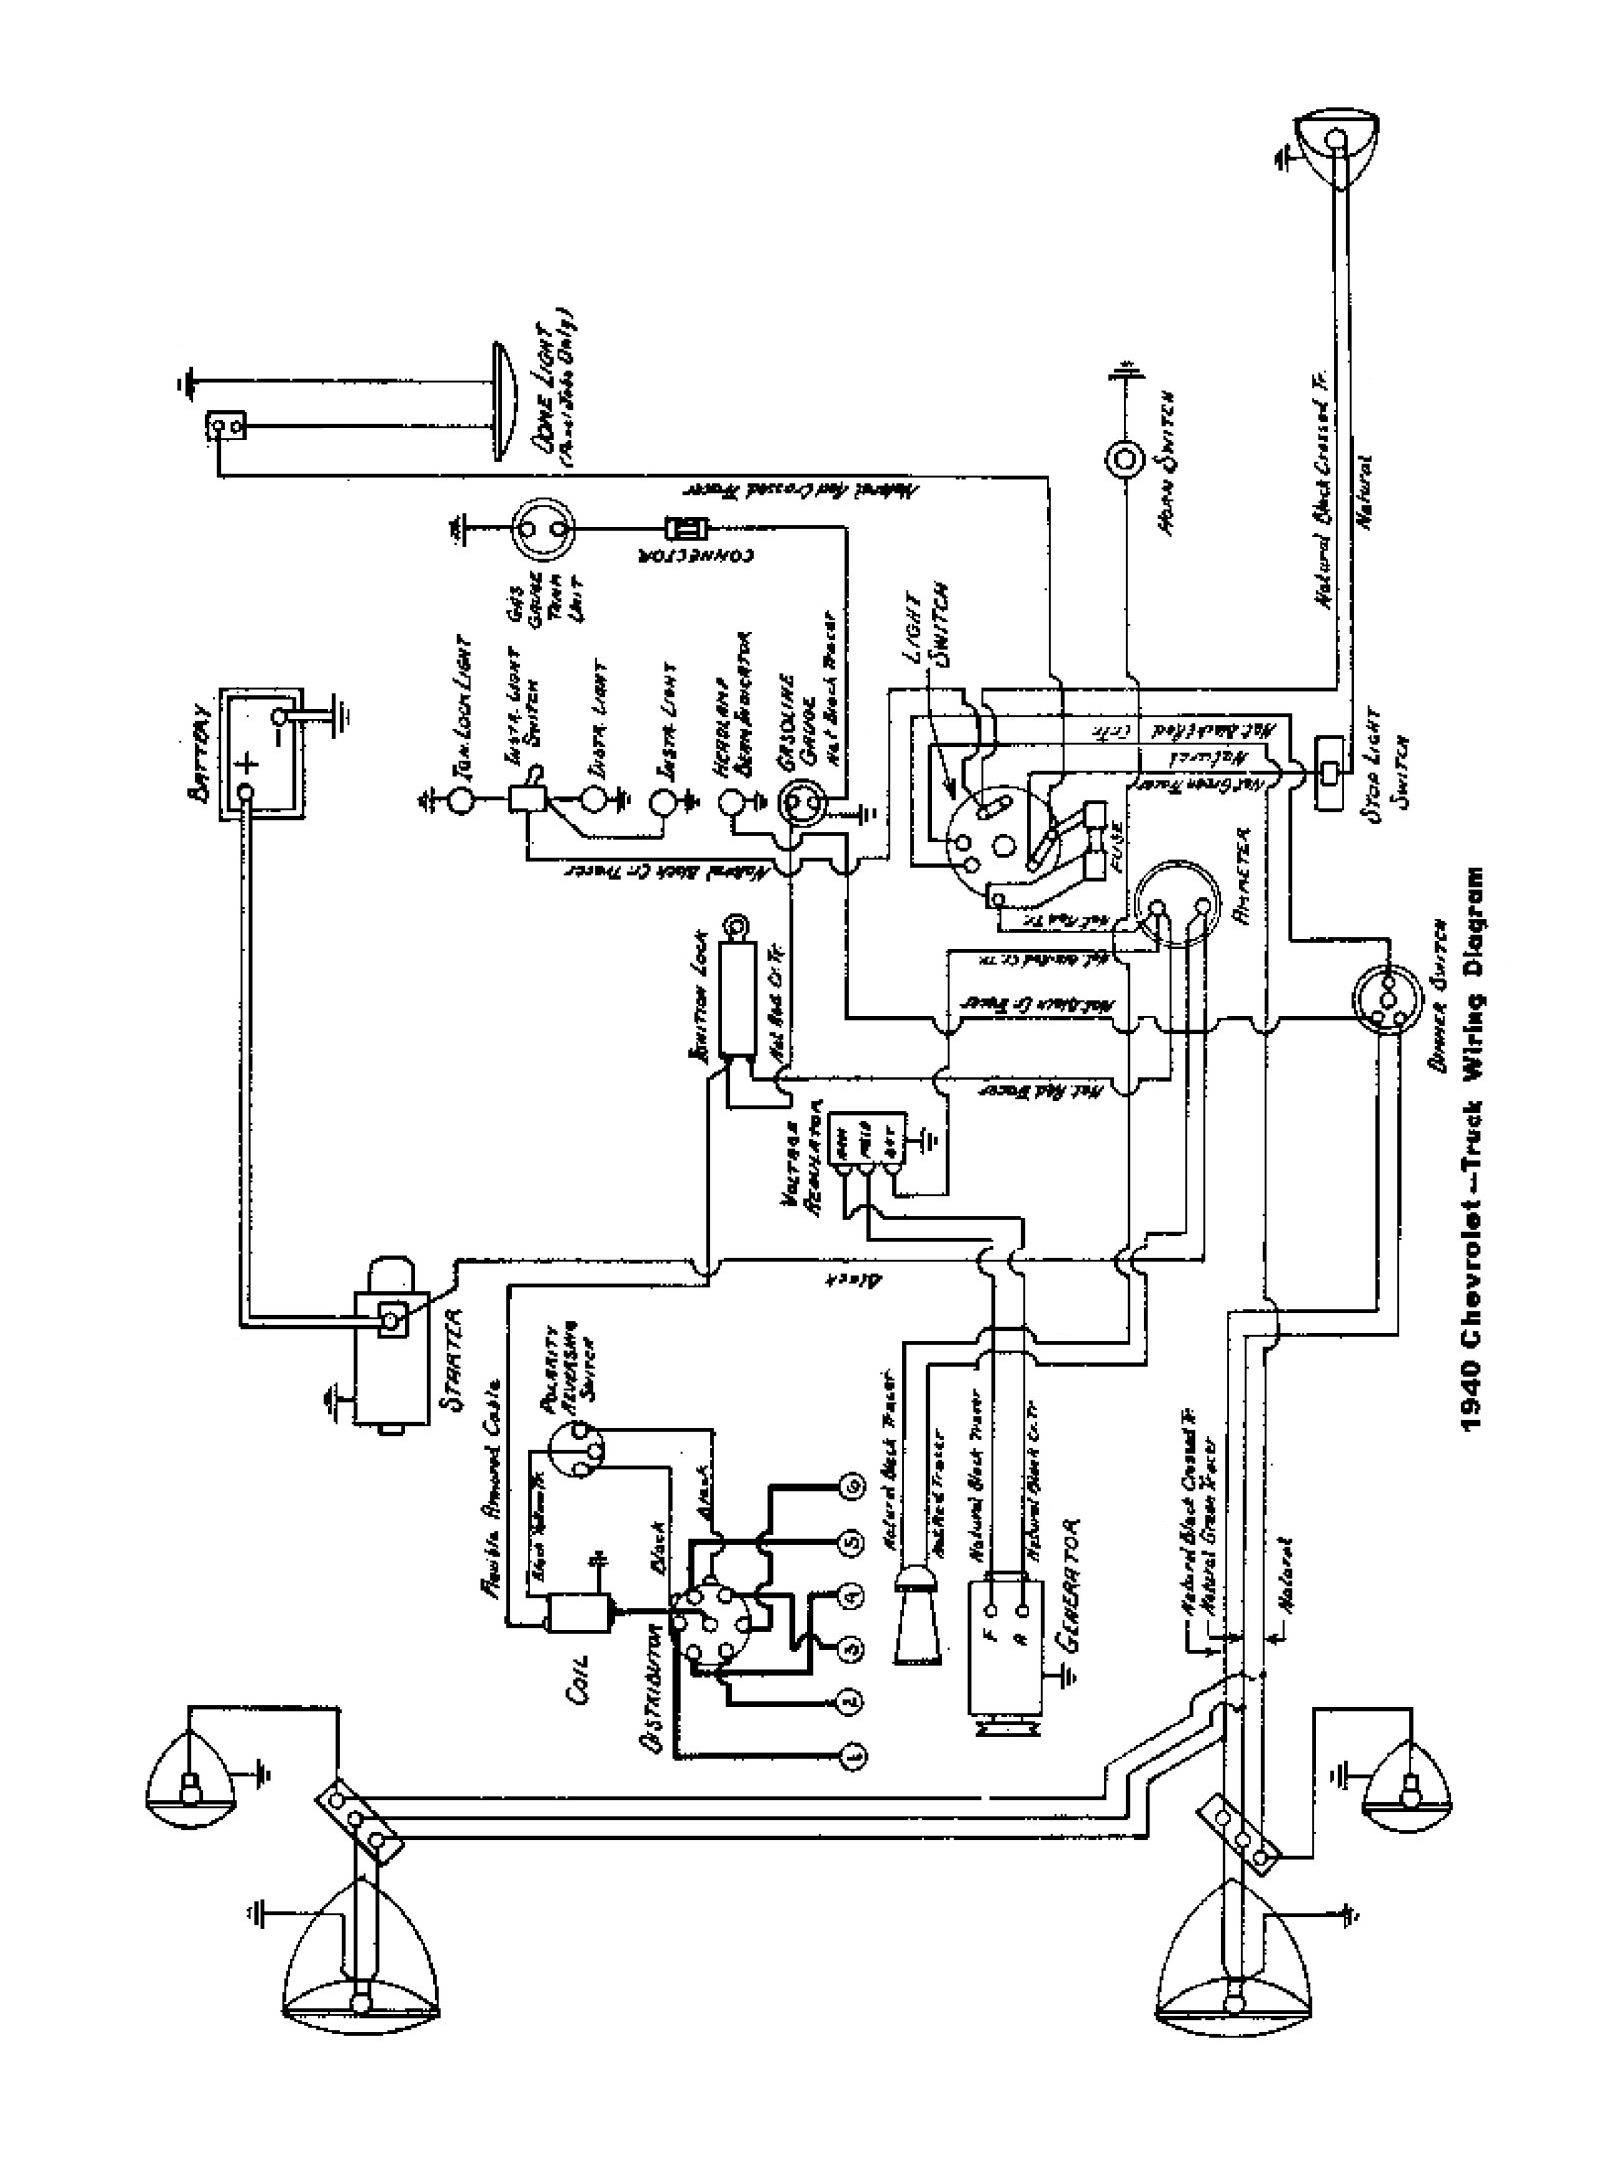 gm steering column wiring diagram 01 chevy cavalier radio 1970 nova